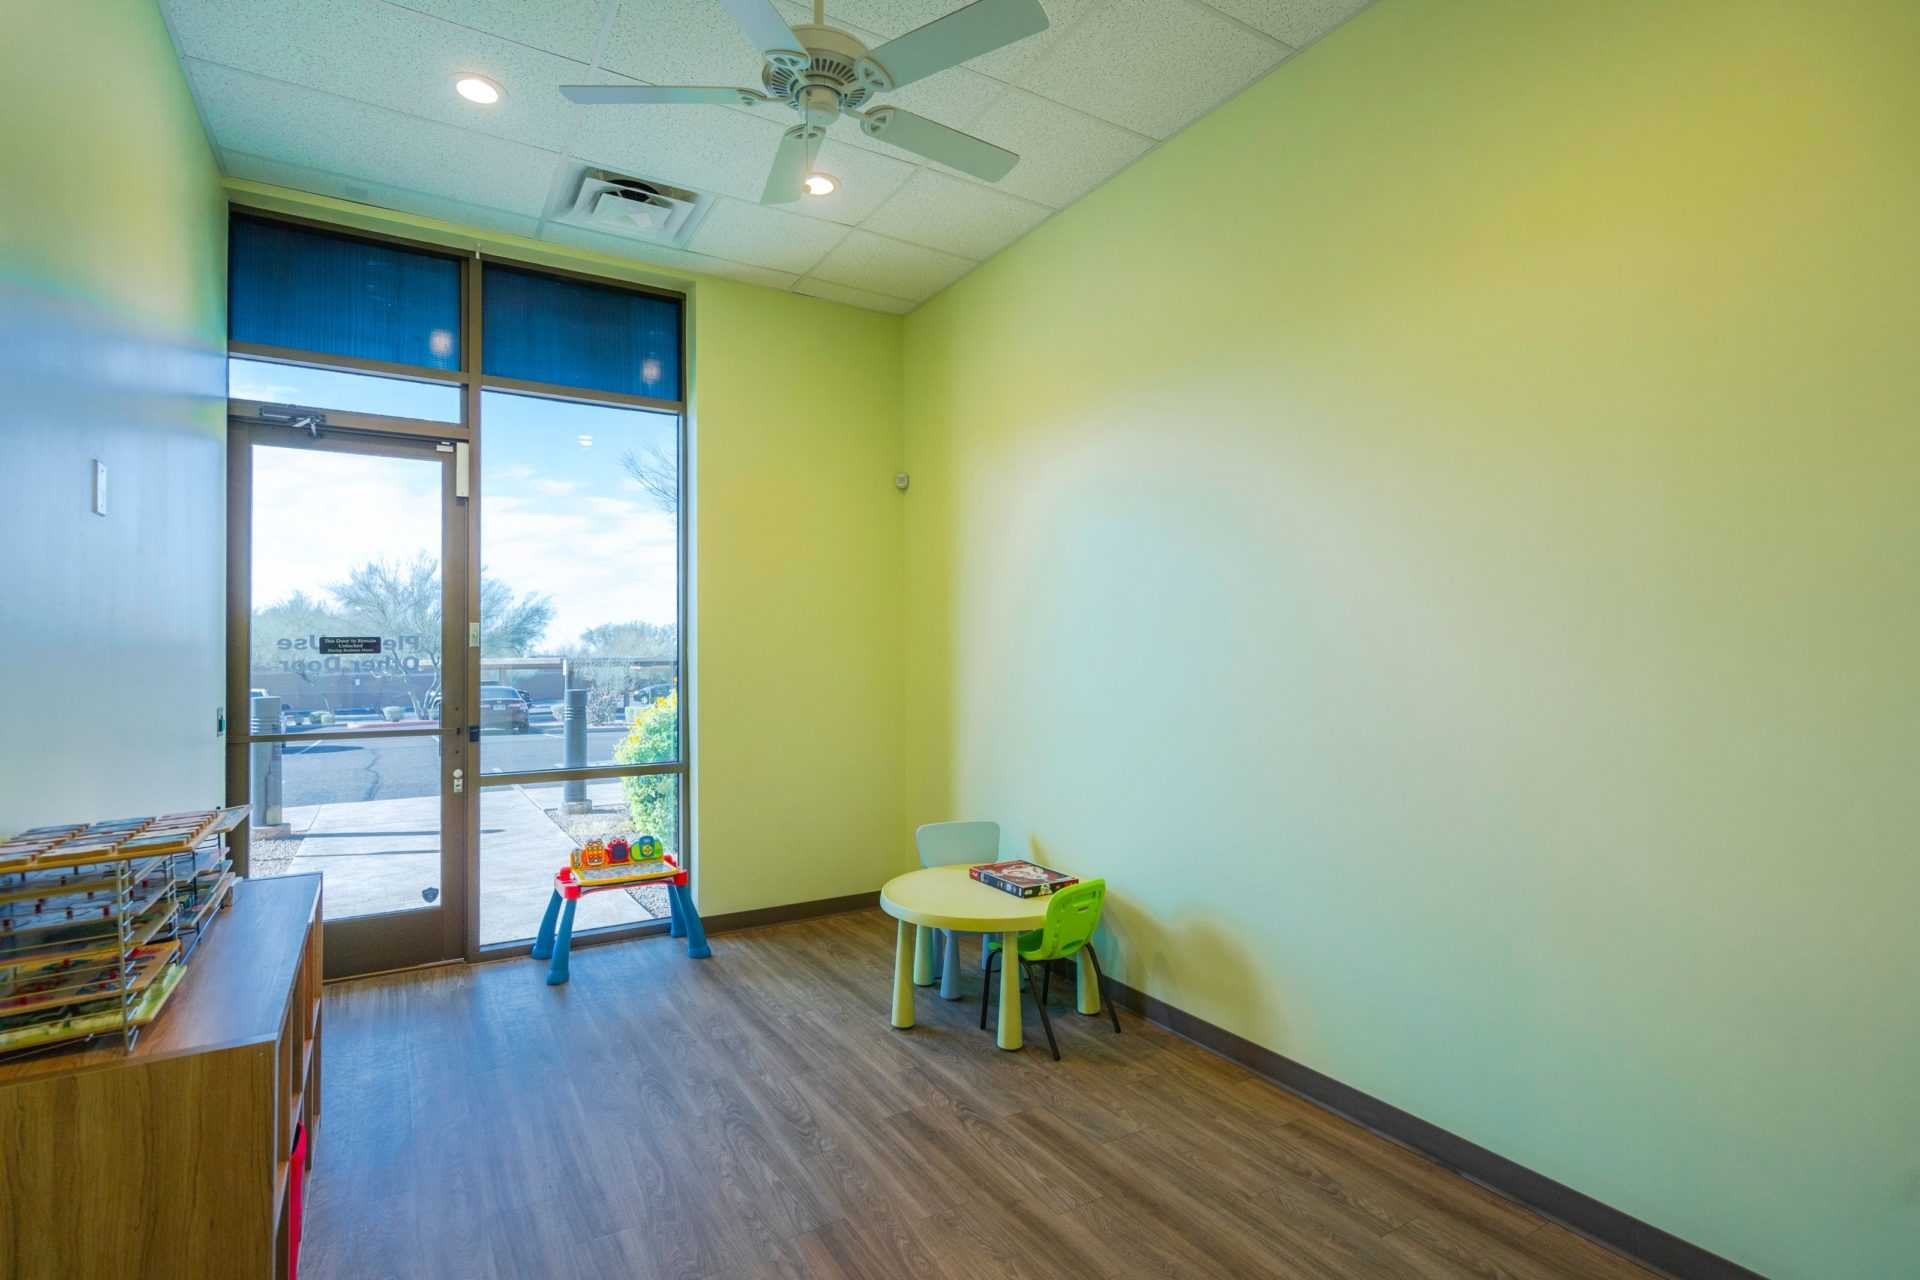 a play and toy room in the Scottsdale Children's Institute with a table in the corner